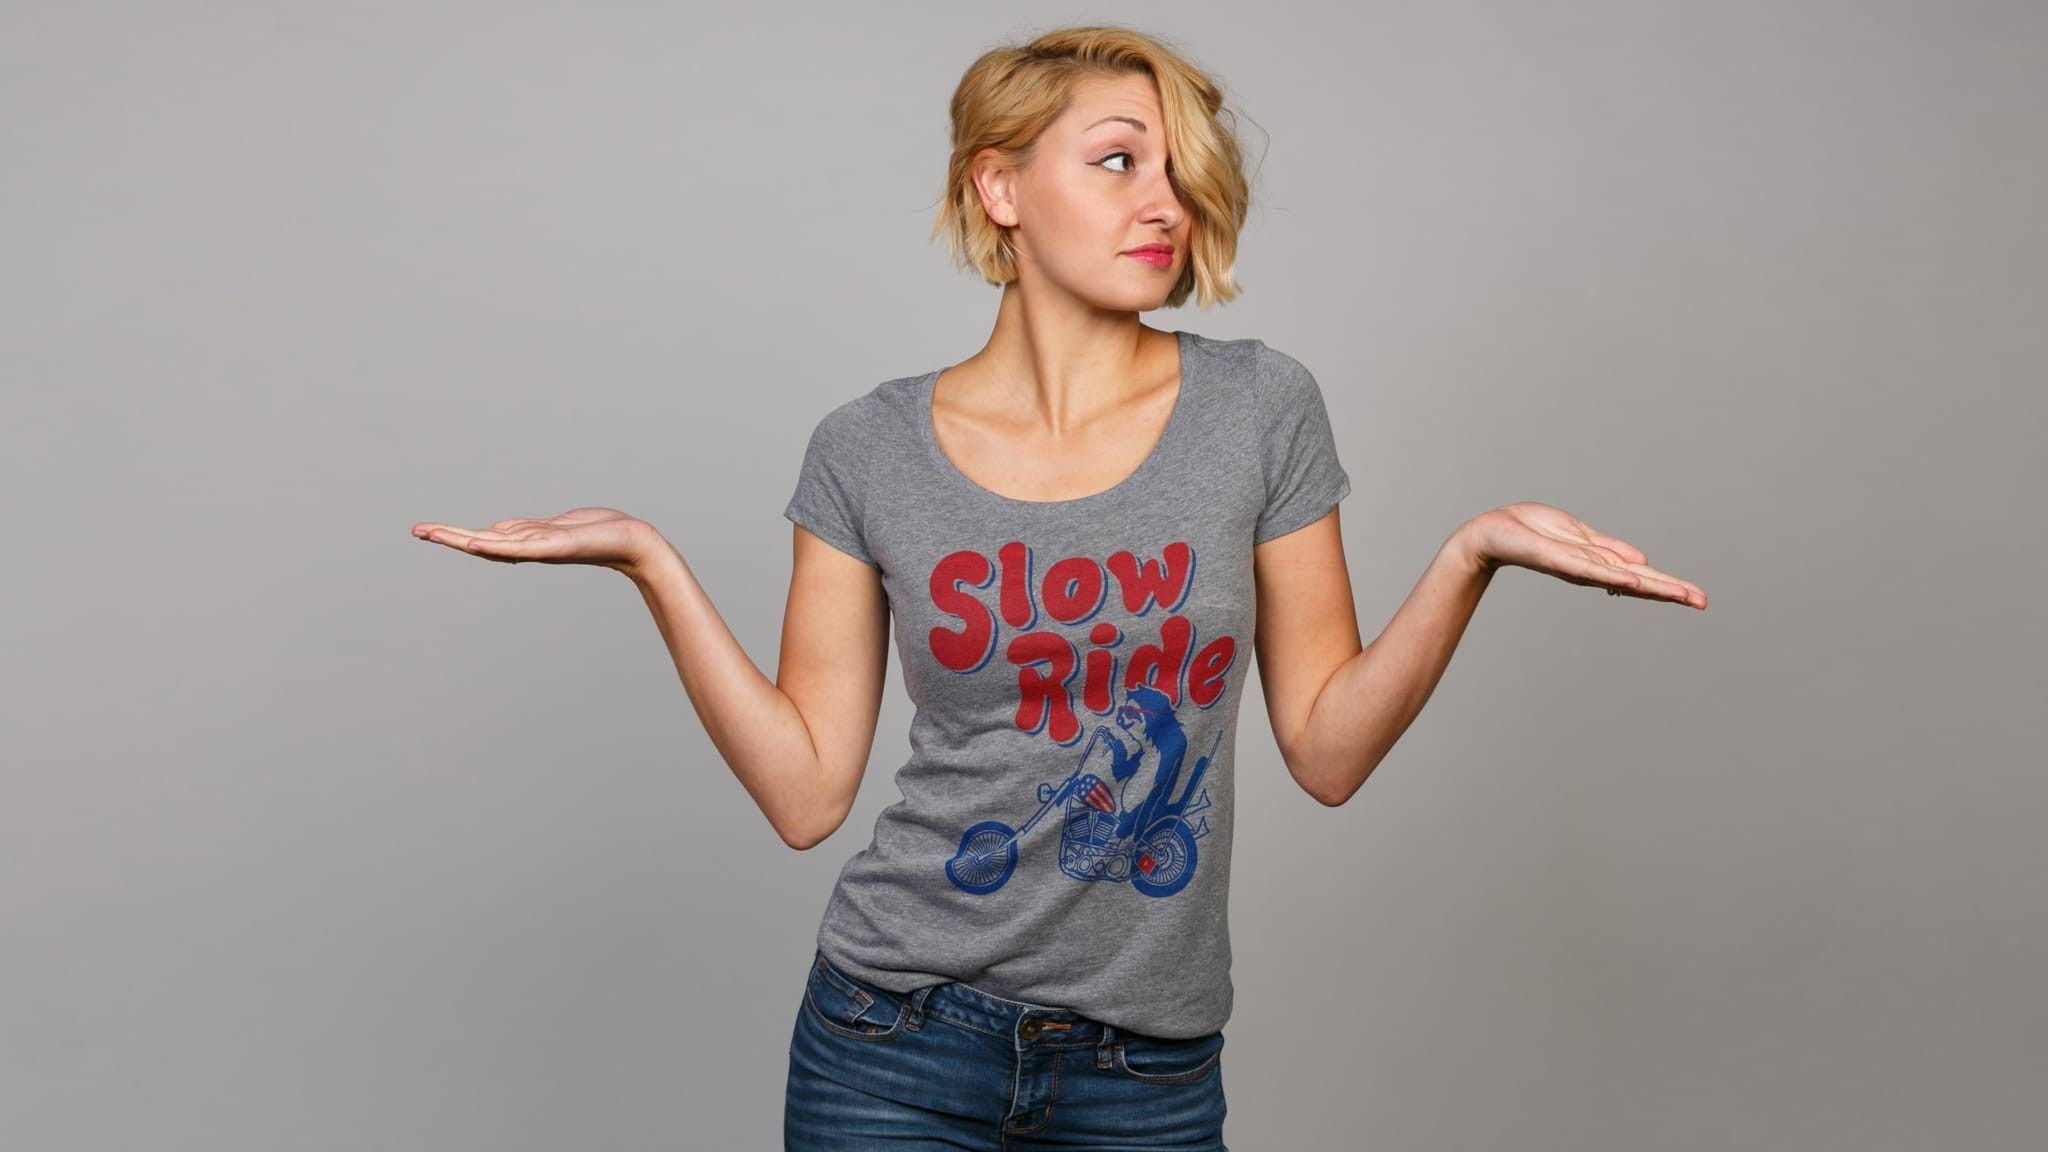 Whoa, whoa, whoa there. Let's pump the brakes a bit, shall we? What's the big hurry? Anyone ever tell you to stop and smell the roses?Slowing down is an art form and a way of life. So, take a queue from the noble sloth and SLOW THE 'F' DOWN!This athletic gray tee was slowly constructed of a 50/50 cotton/poly blend and goes great on the back of a sweet chopper.How Does It FitSlimfit, size up for extra comfort.Take Care of Your ShitMachine wash cold, inside out, with like colors. Tumb...